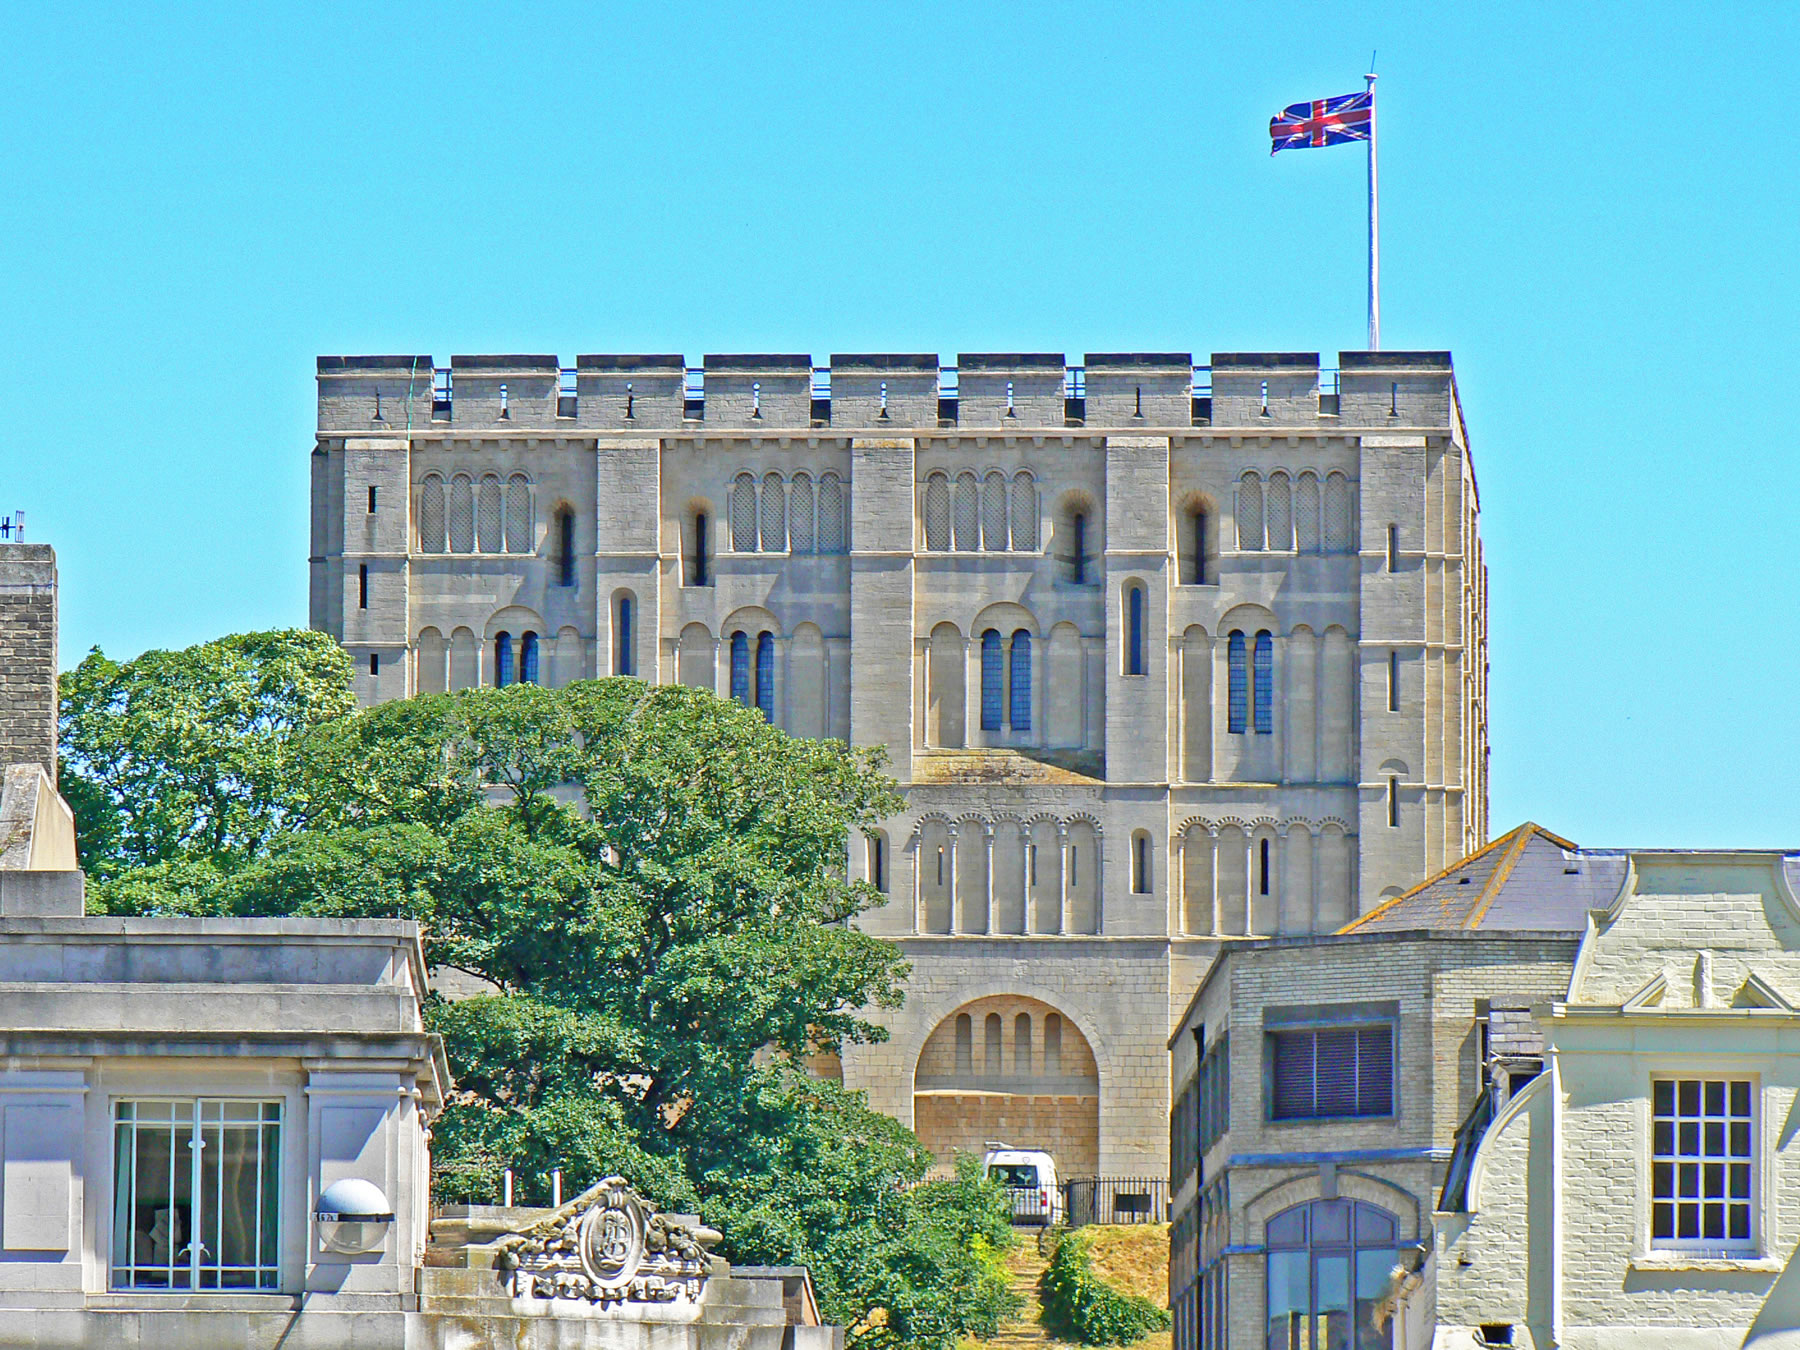 http://www.tournorfolk.co.uk/norwich/norwichcastle.jpg